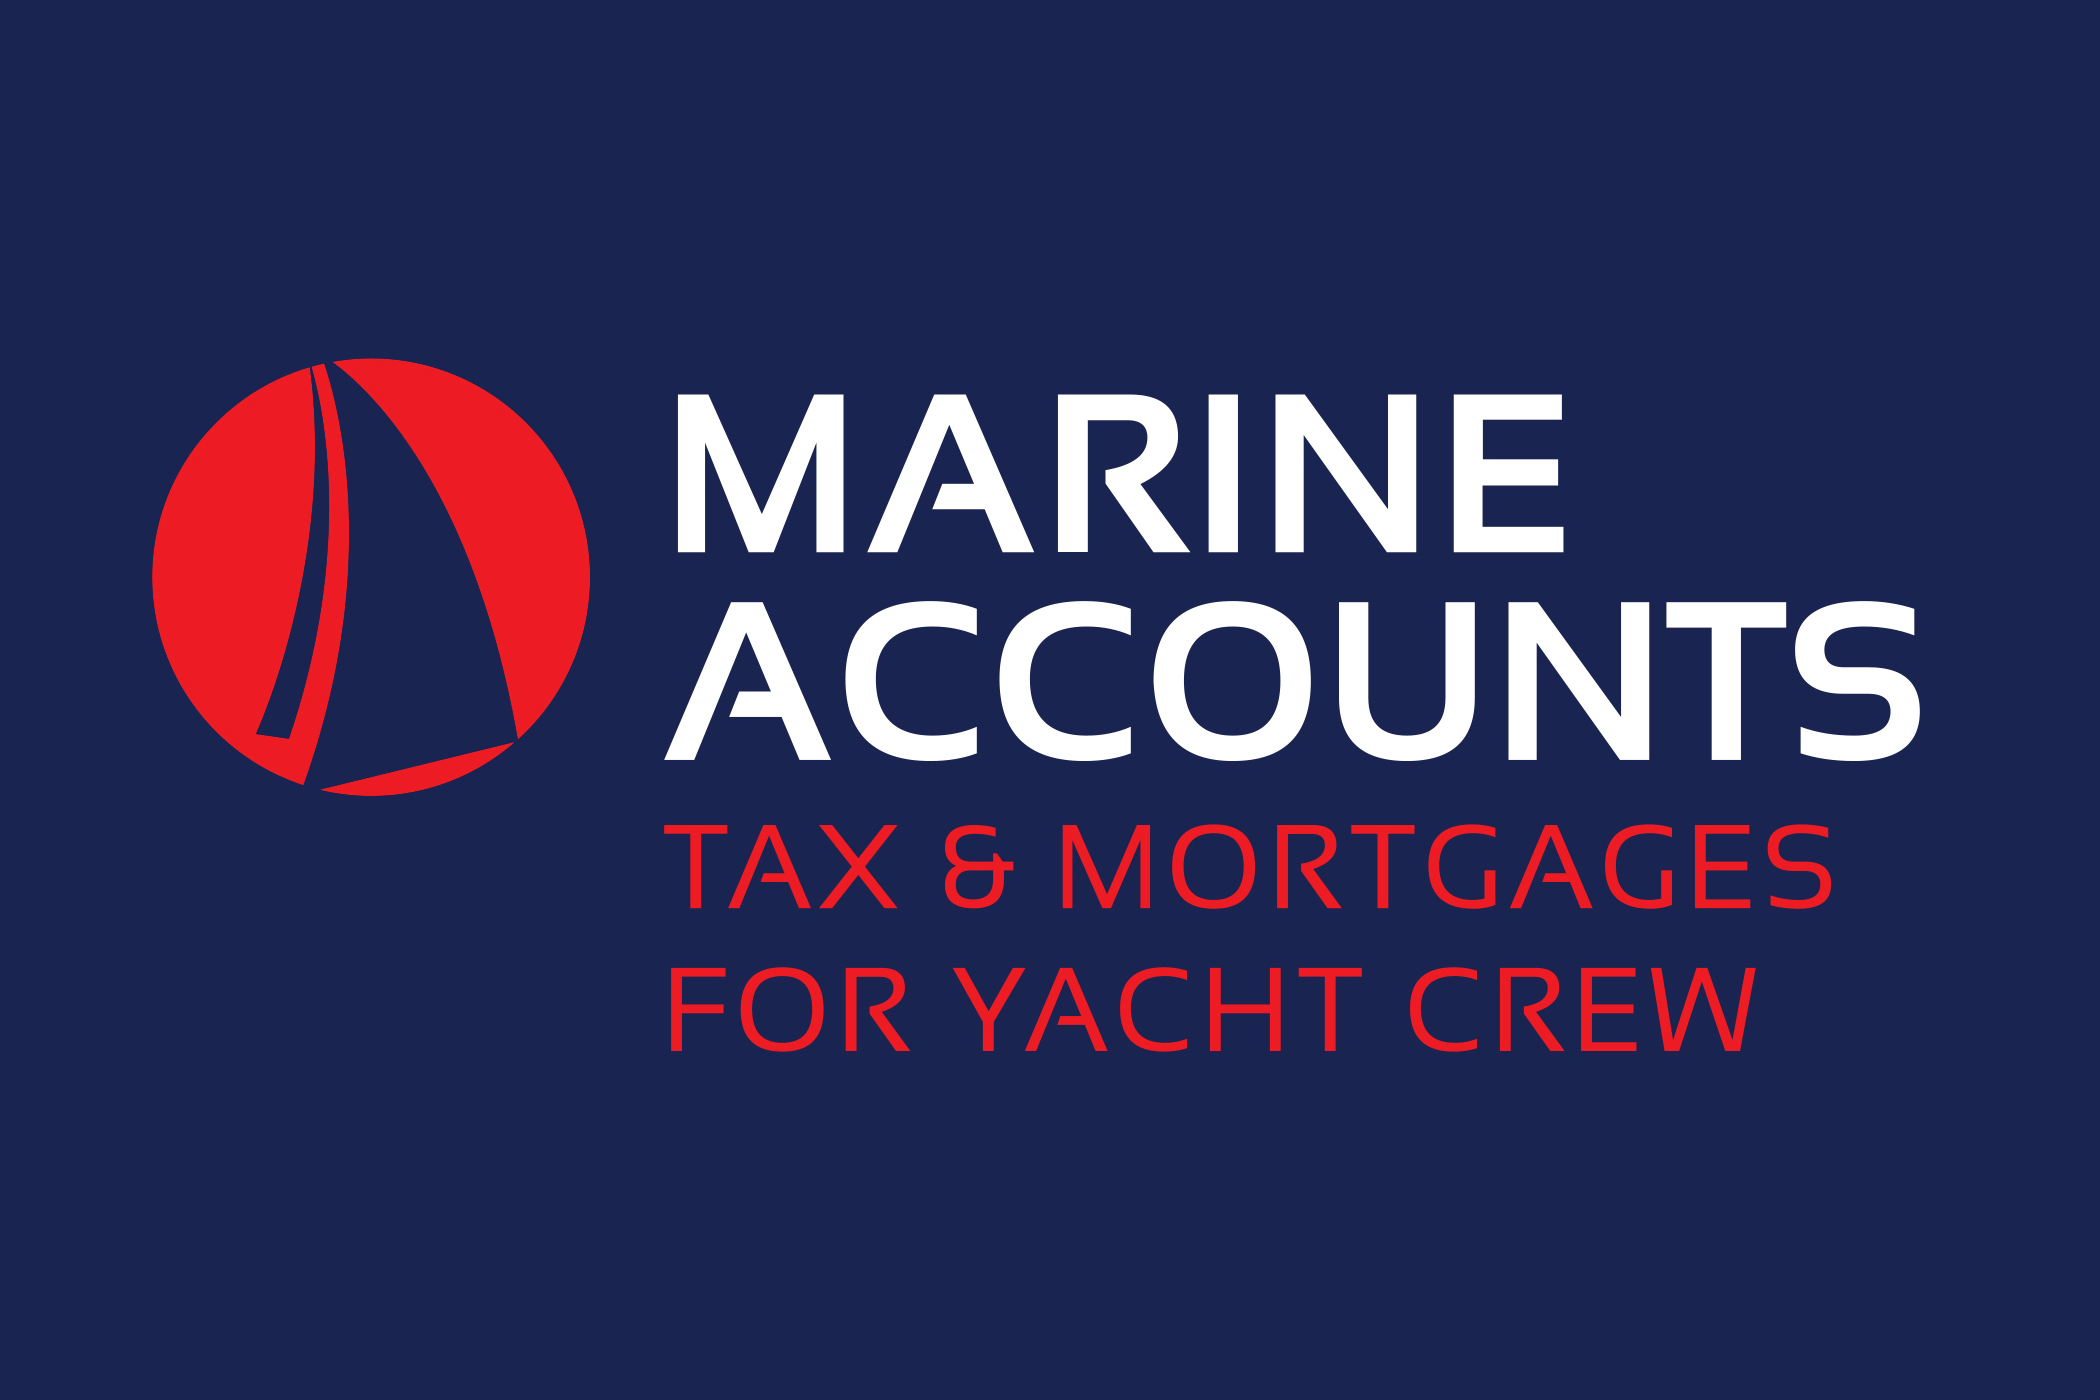 Marine Accounts